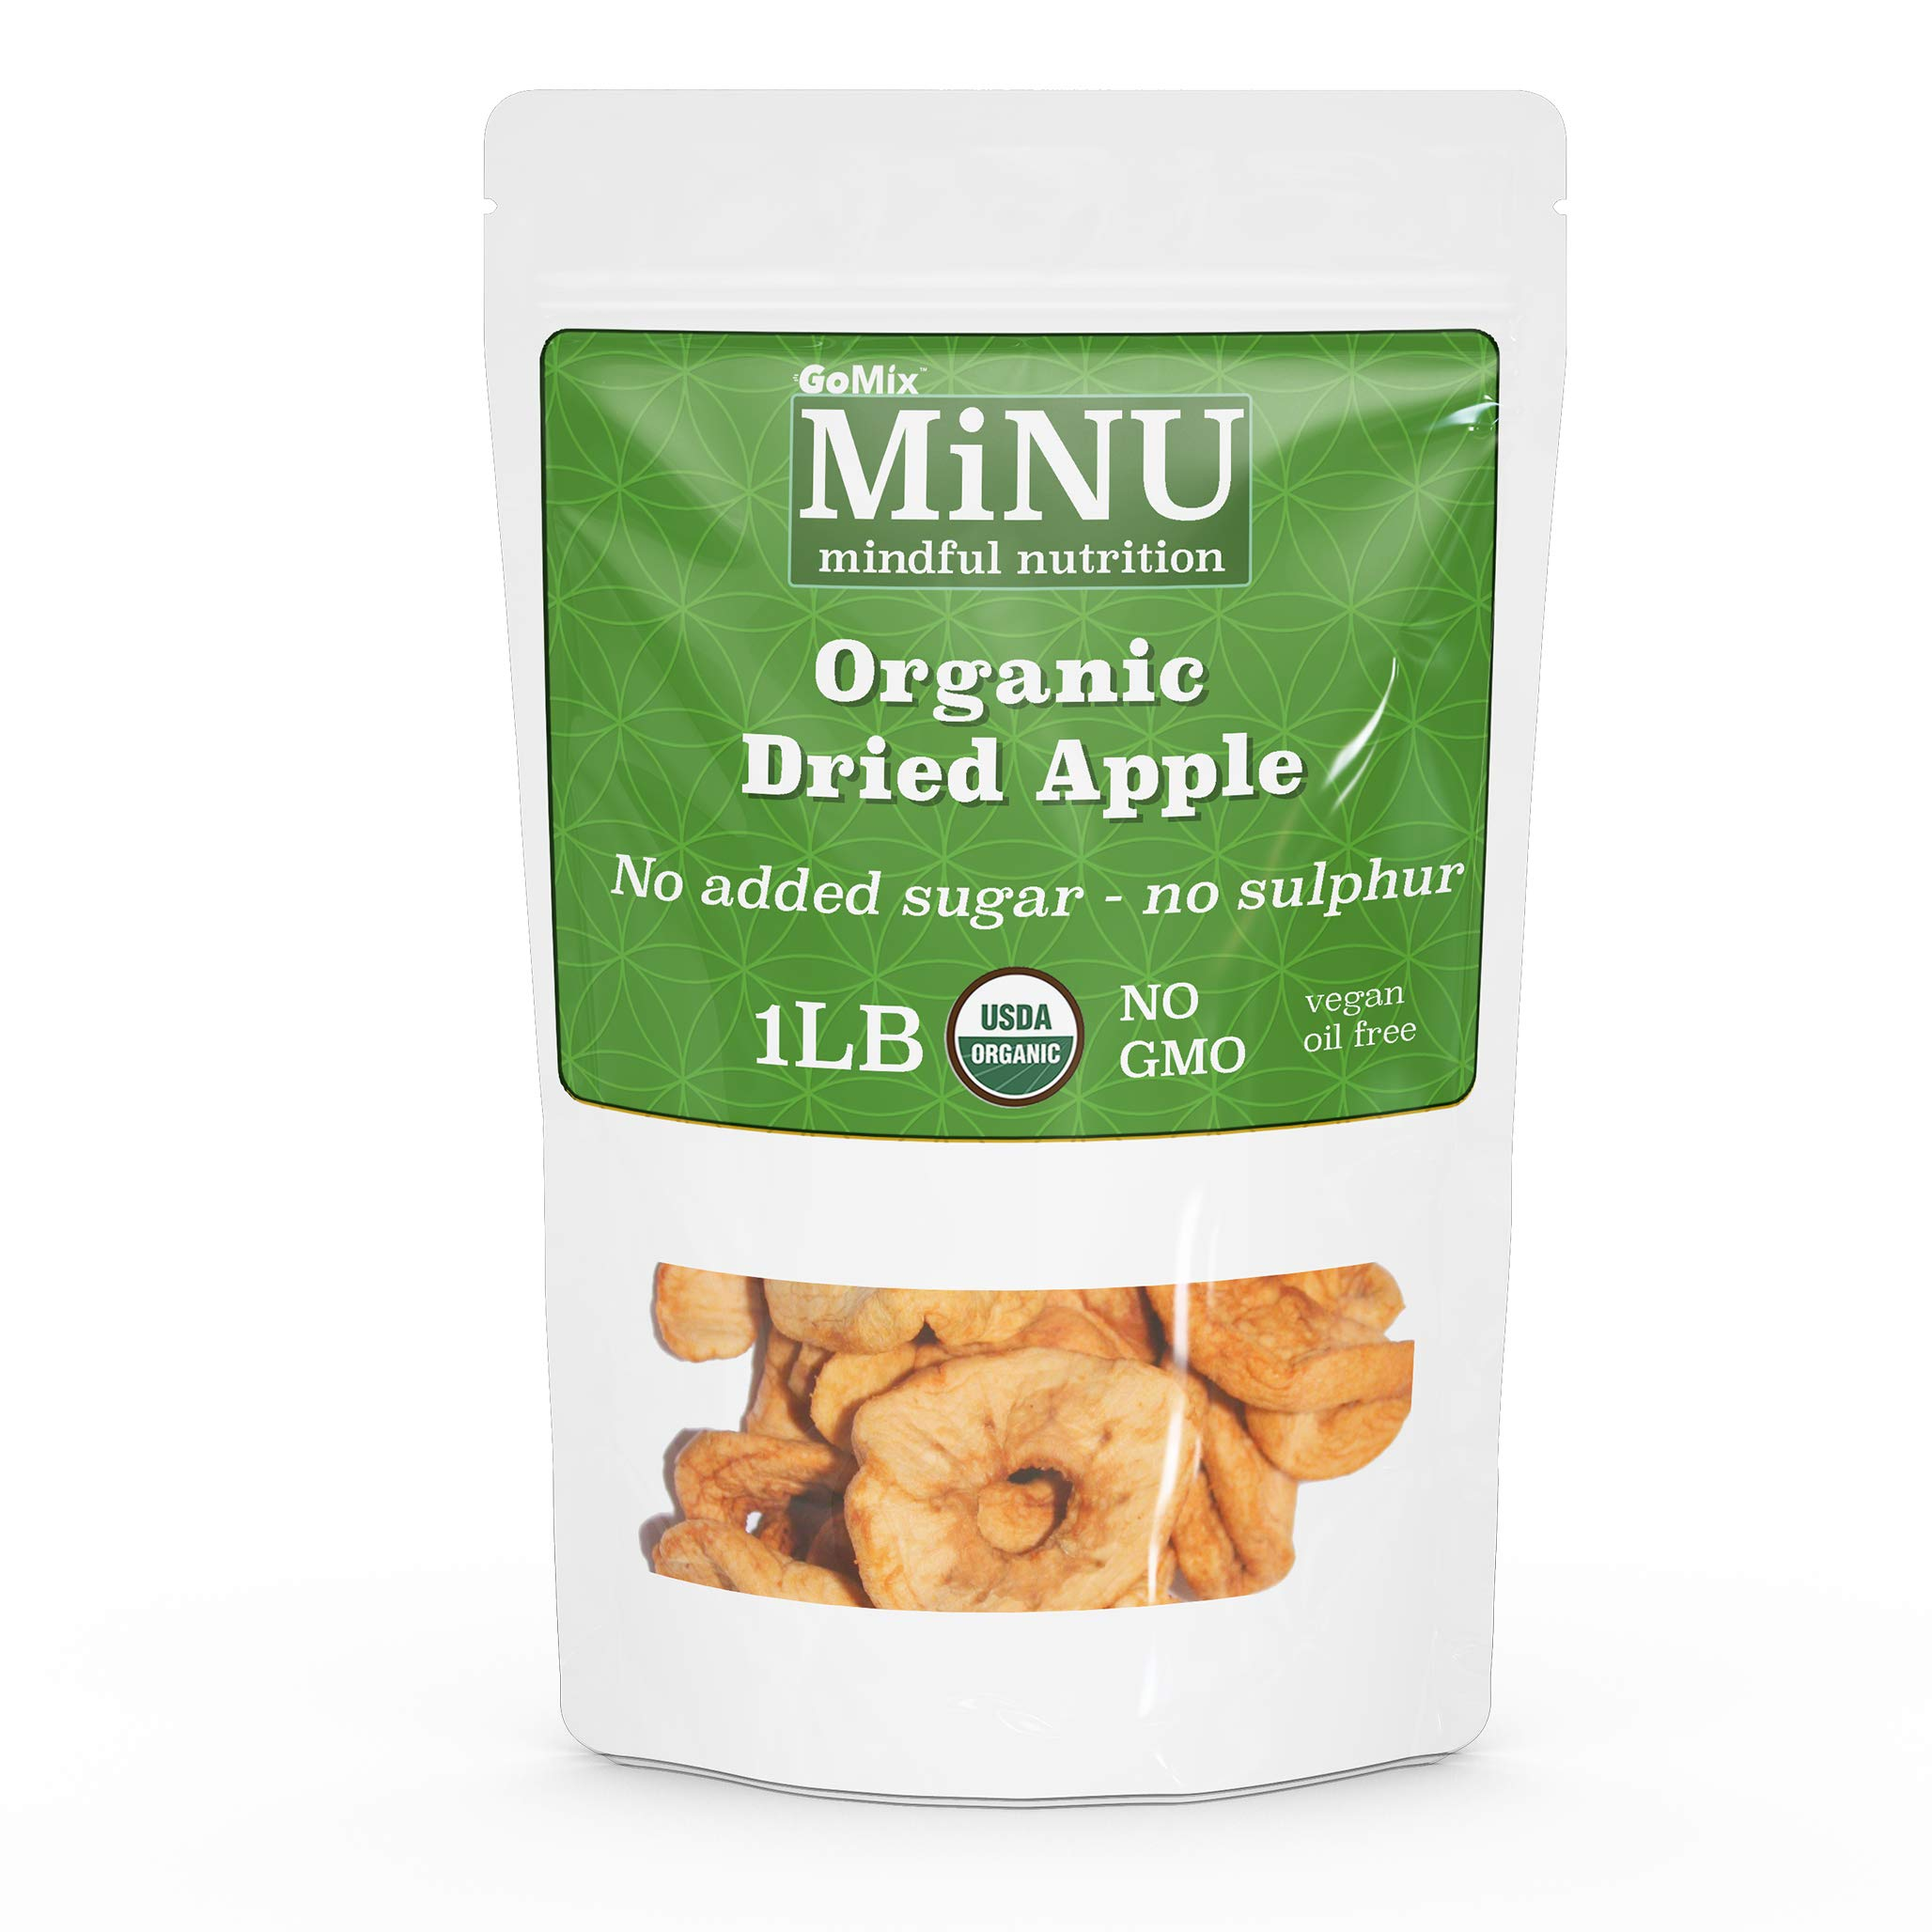 GoMix Organic Dried Apple Rings16 oz (1 lb), MiNU Mindful Nutrition No Sulphur No Added Sugar Superfood, Raw, Protein, Paleo, Vegan, NonGMO, Gluten Free No Nonsense! ... (16 oz (1 lb)) by GoMix